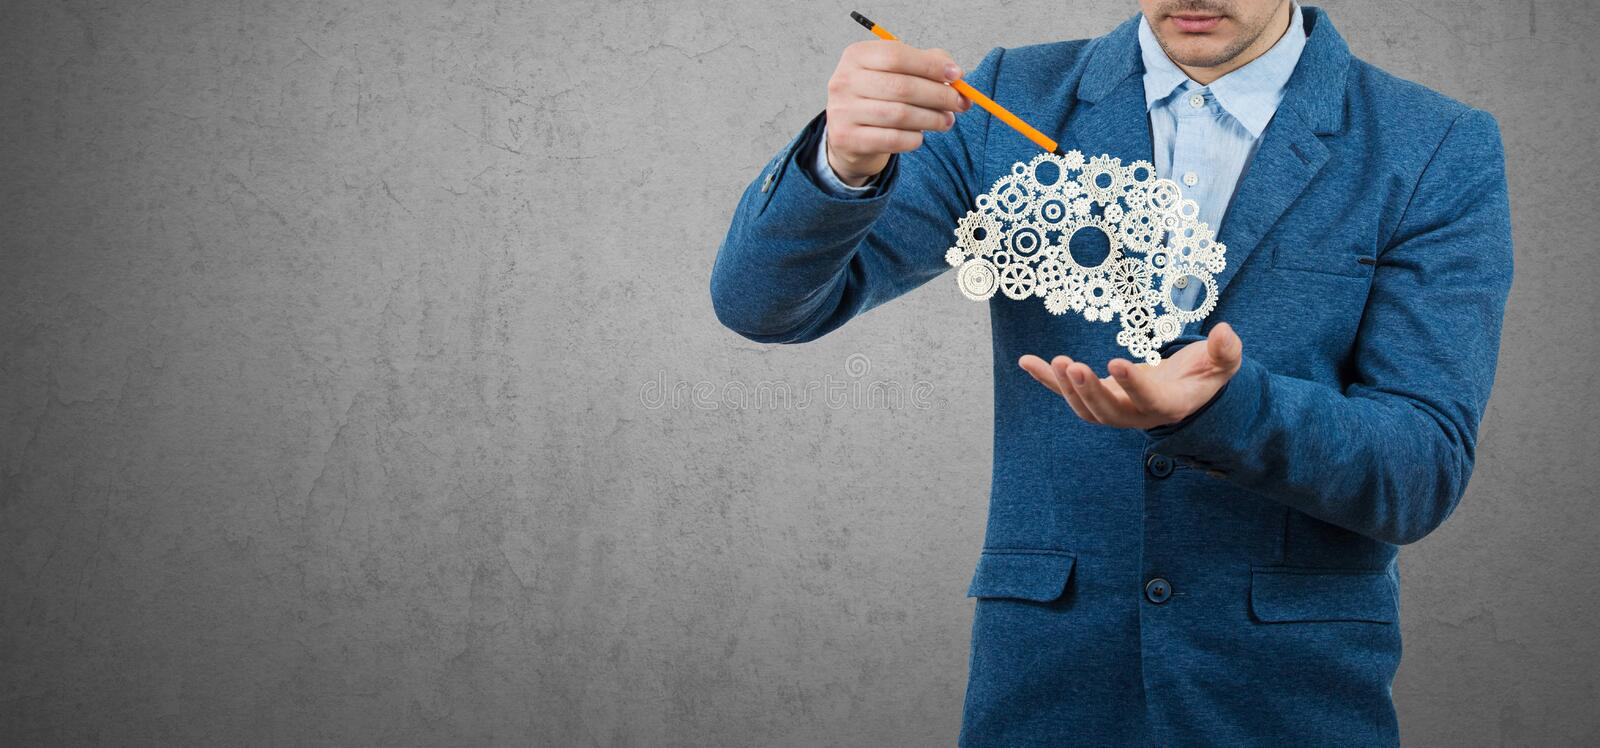 Creativity concept. Creative businessman holding a pencil in his hand try to draw an imaginary brain made from gears. Grey wall background.Creativity Concept stock photo